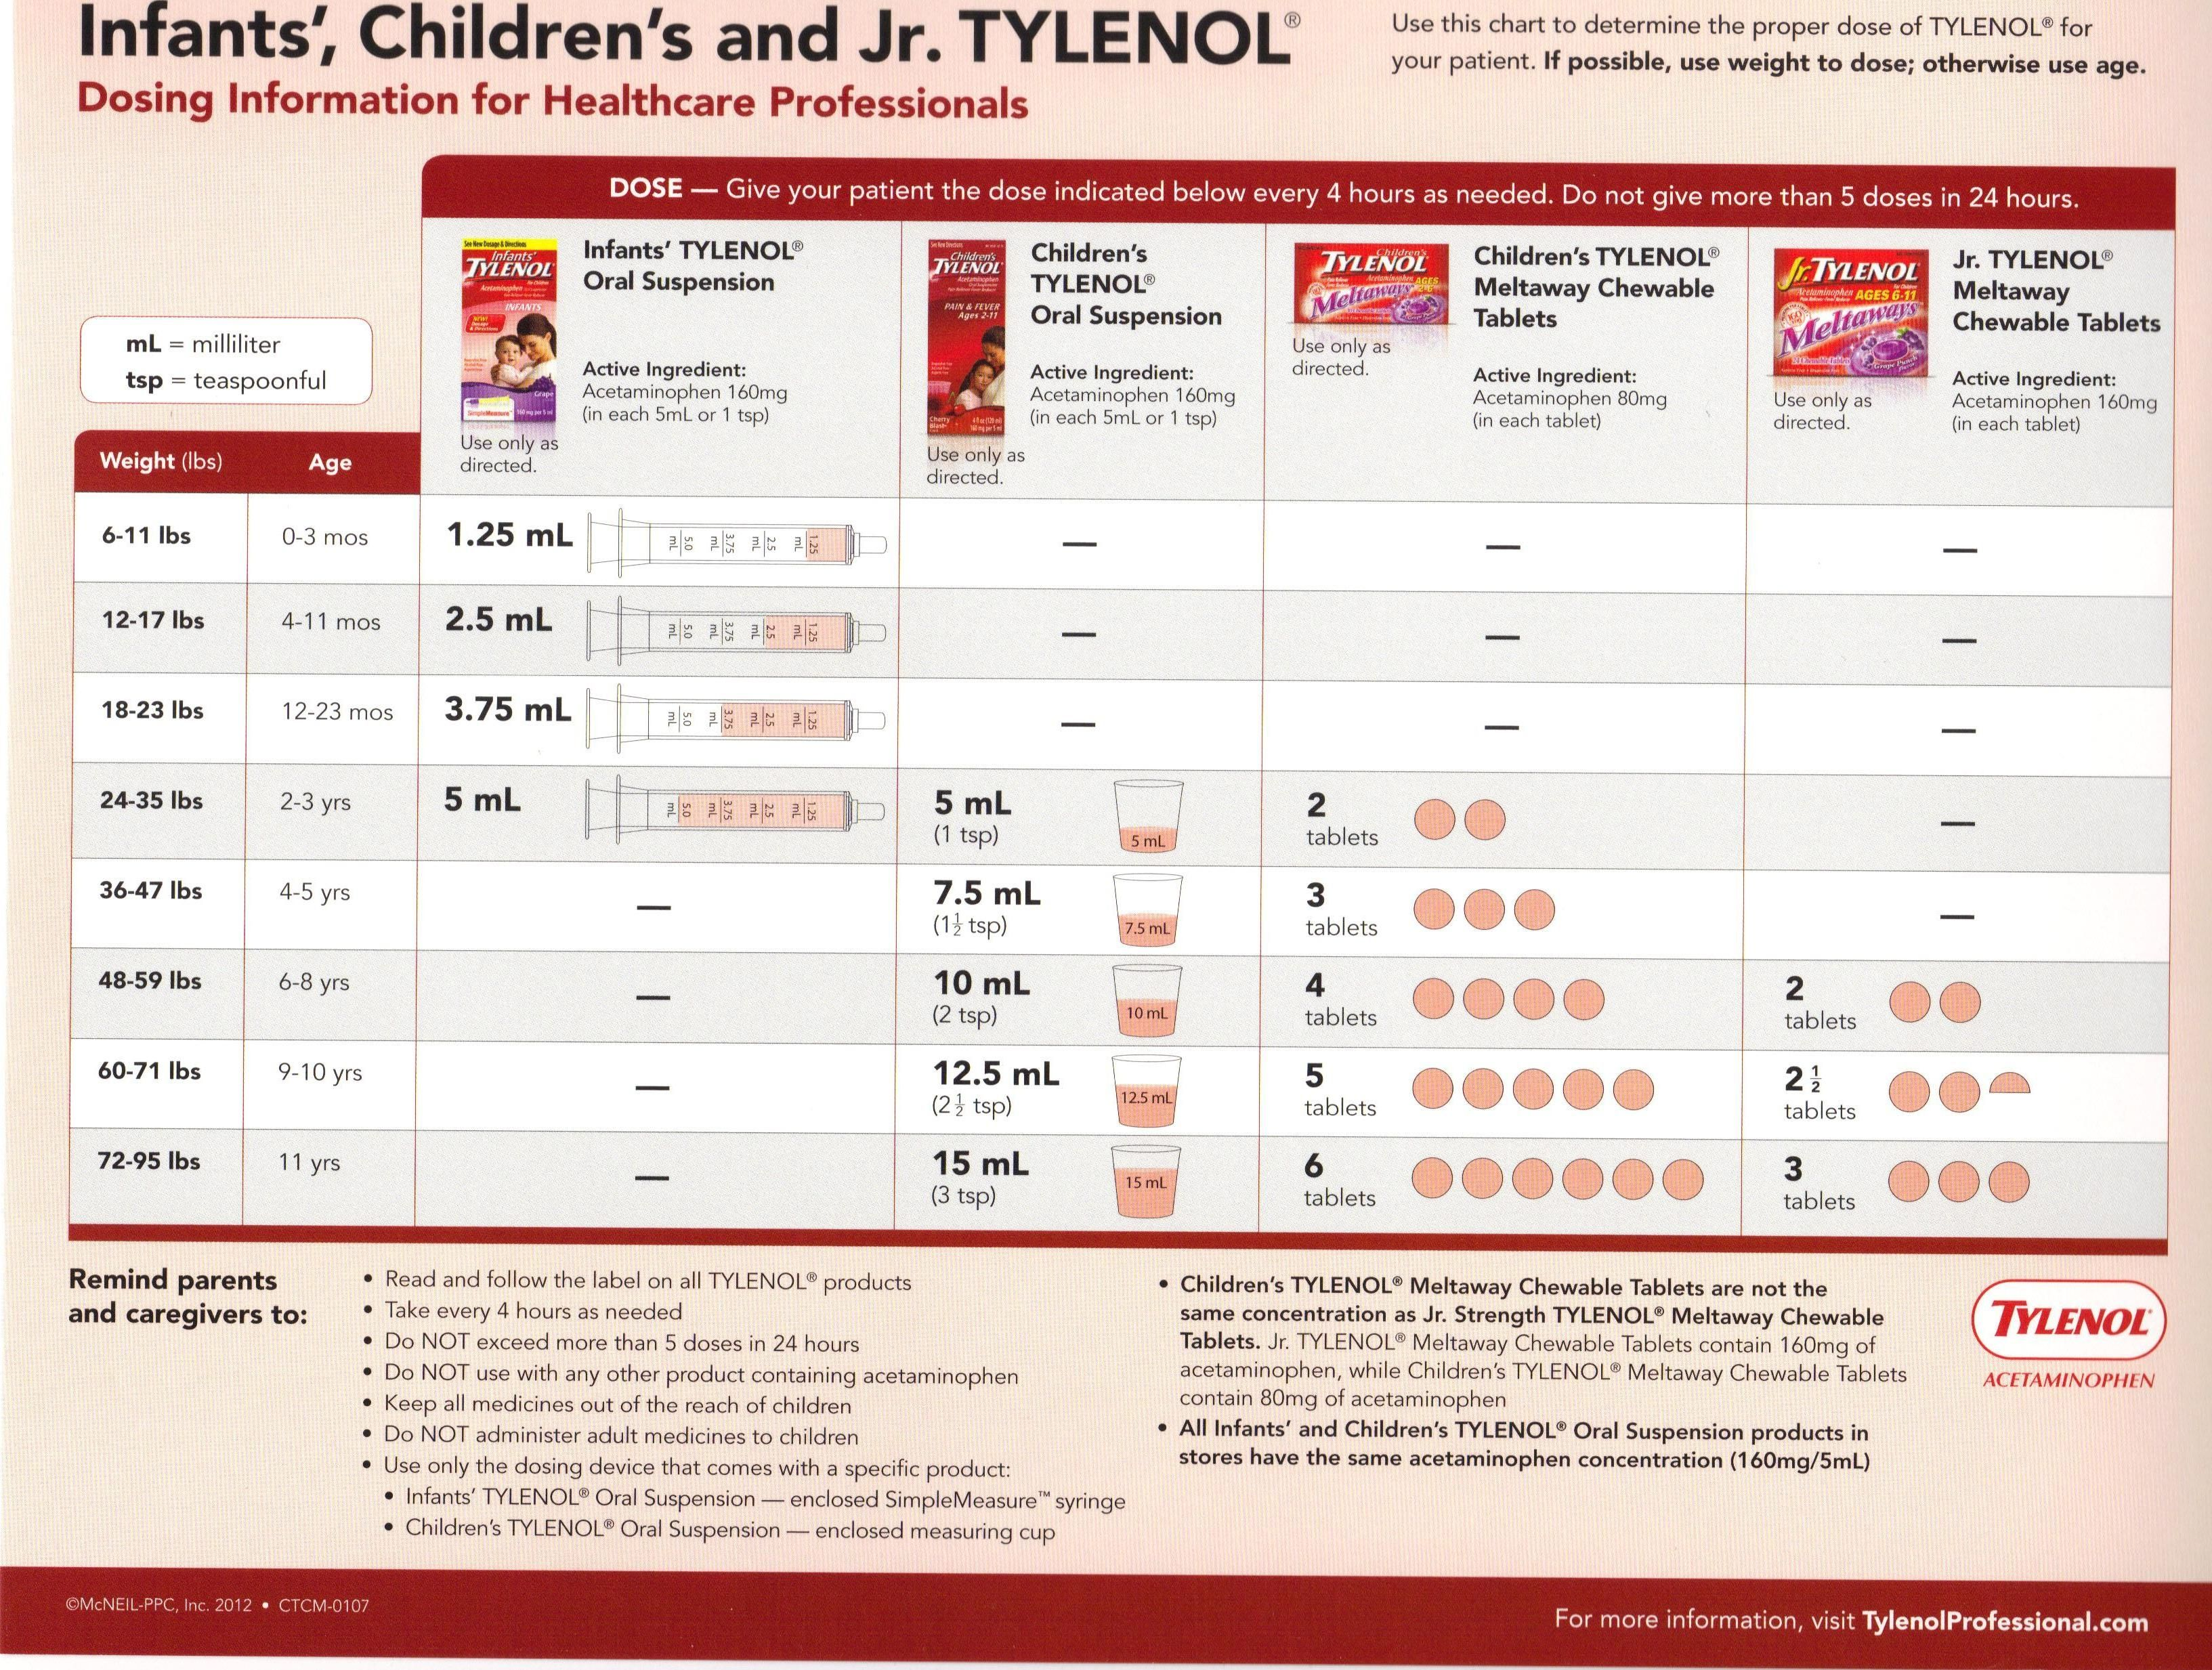 Infant tylenol dosing chart use this chart to determine the proper